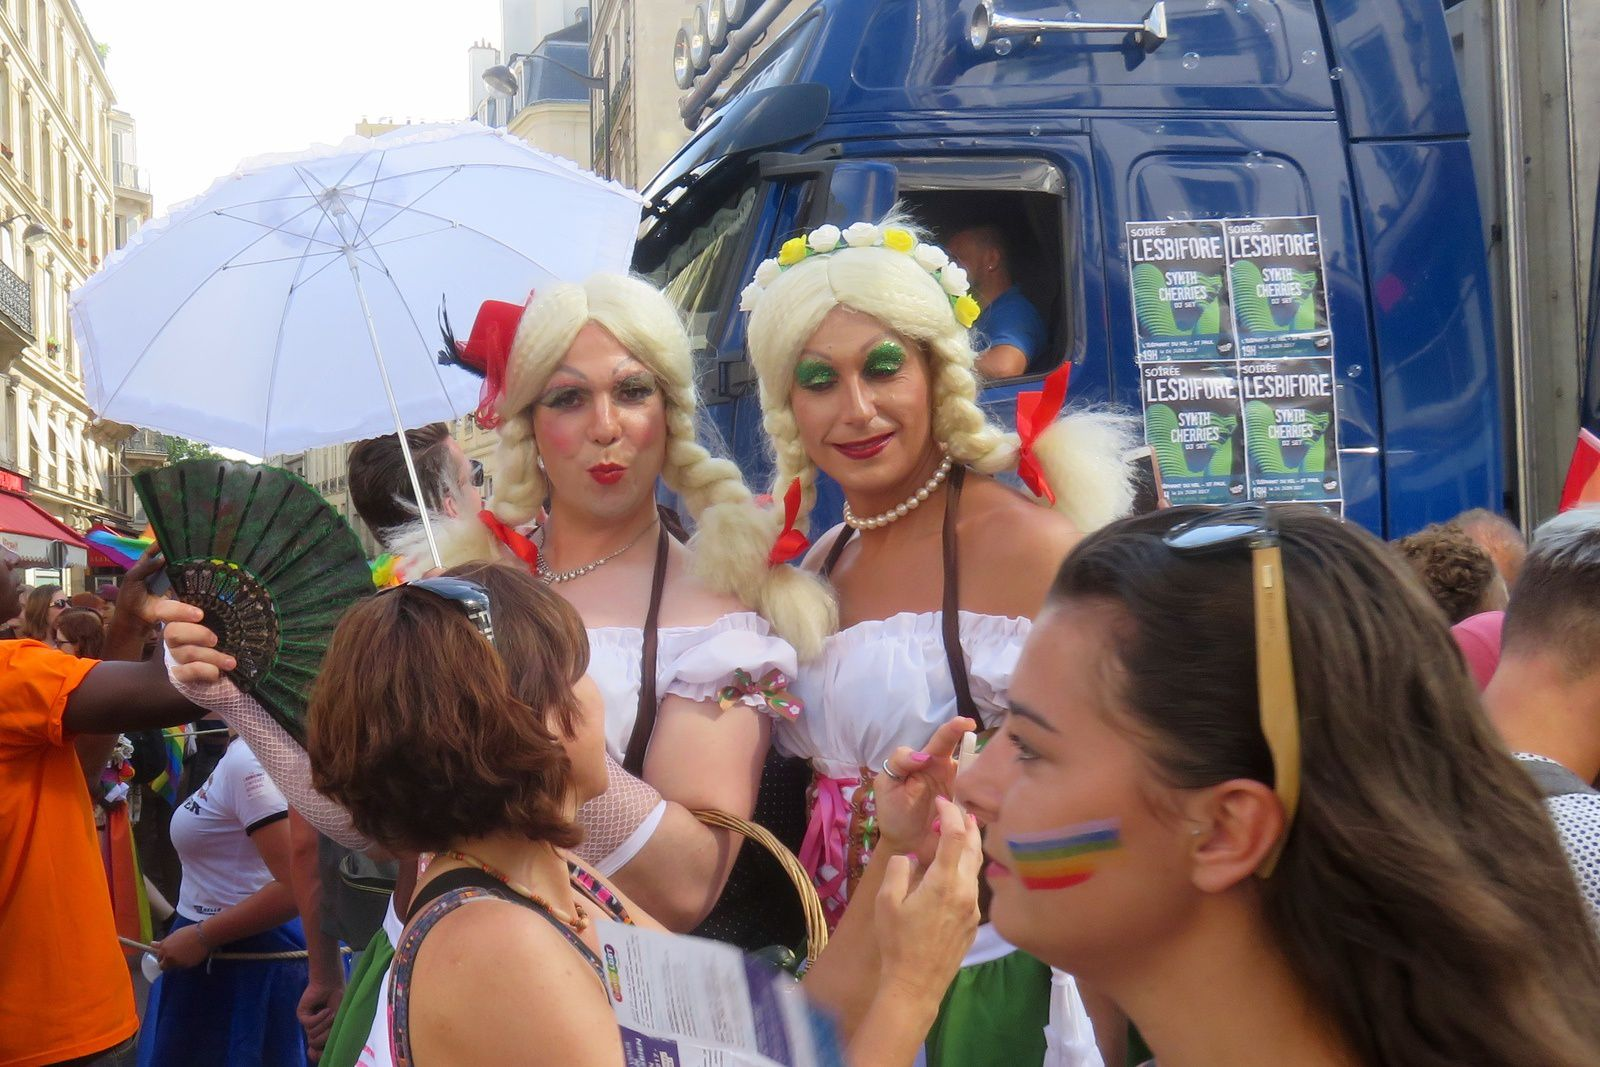 Gay-Pride Paris 2017